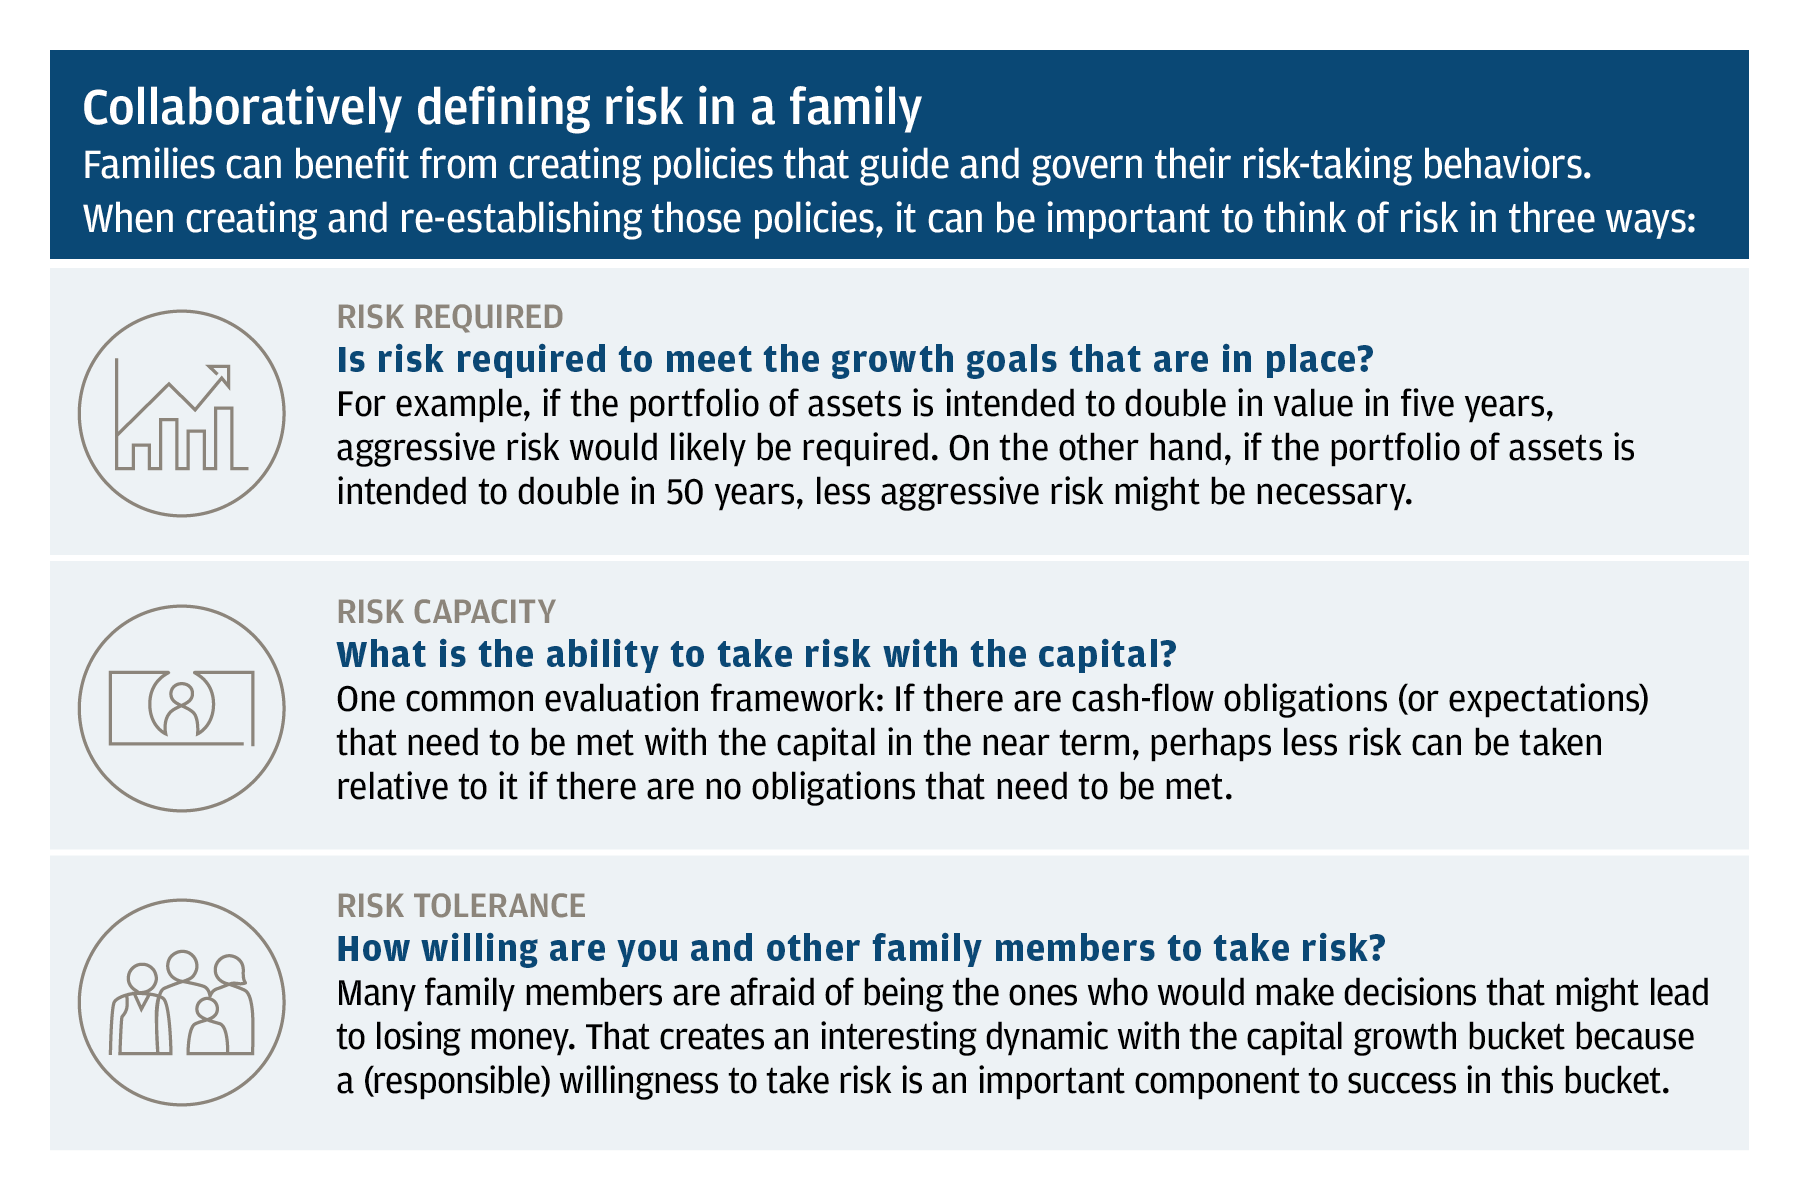 Graphic showing three ways to think about risk: Risk required, risk capacity, and risk tolerance.